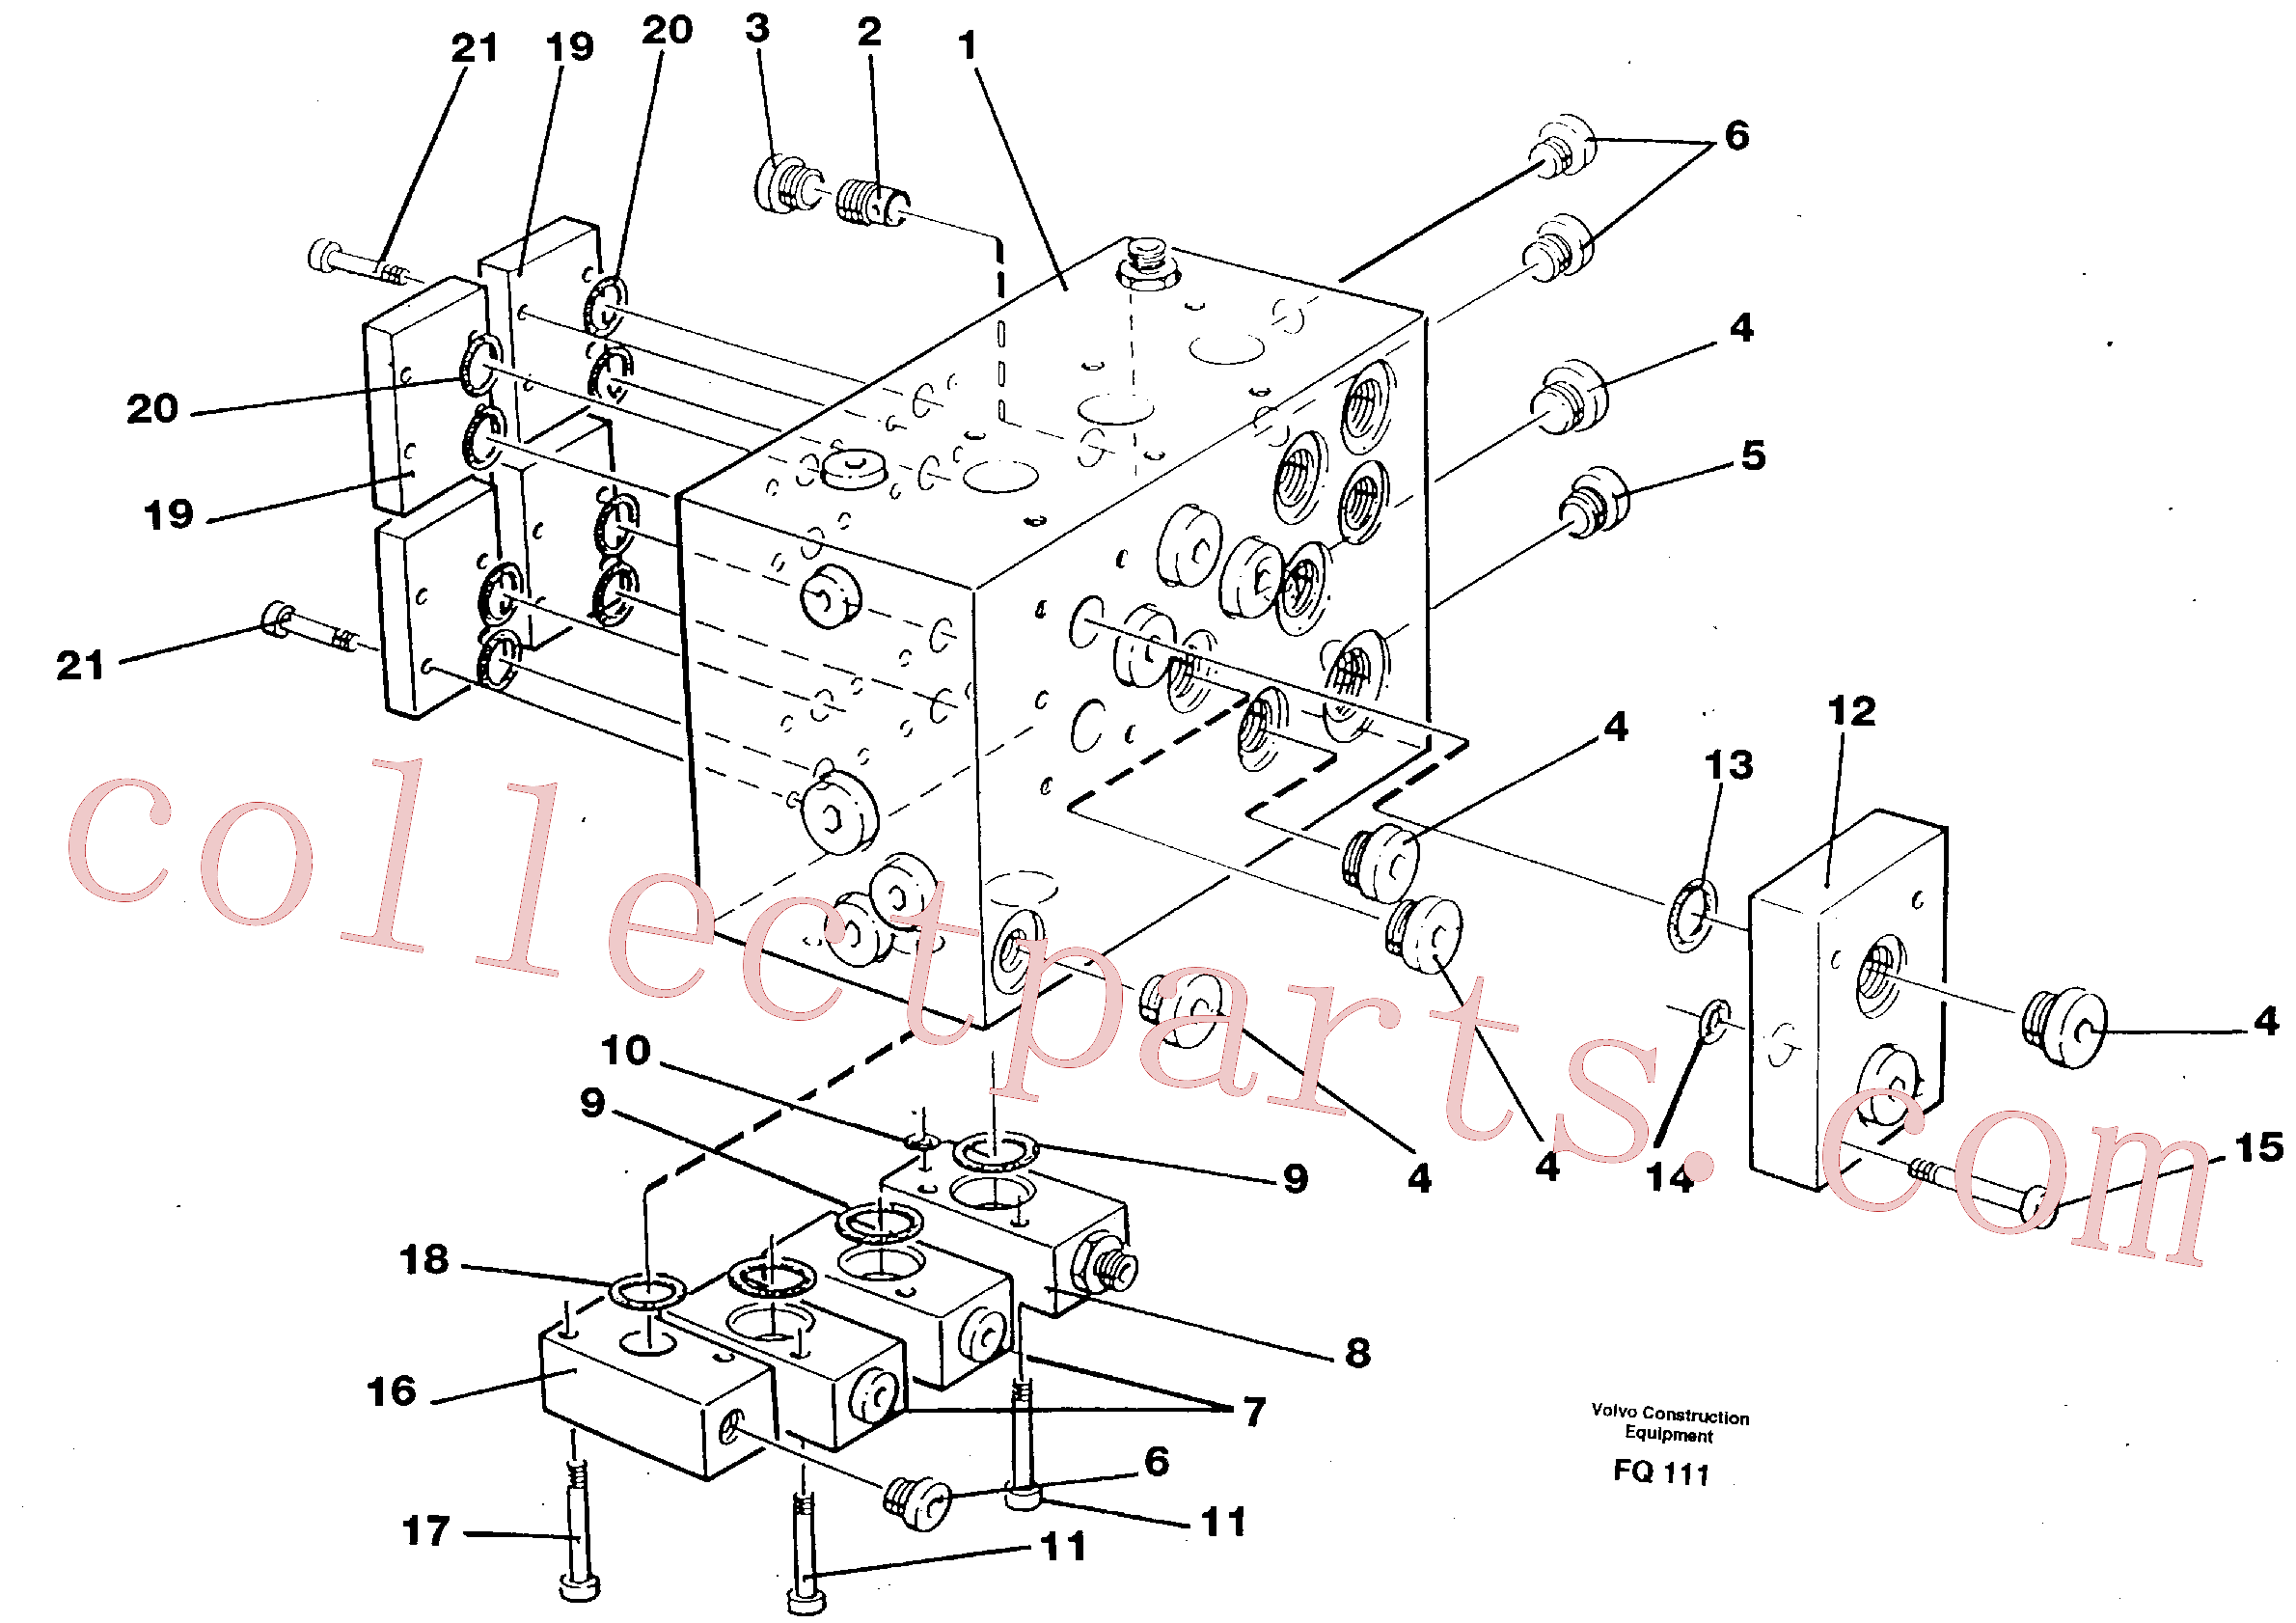 VOE11998170 for Volvo Slew valve assembly block(FQ111 assembly)